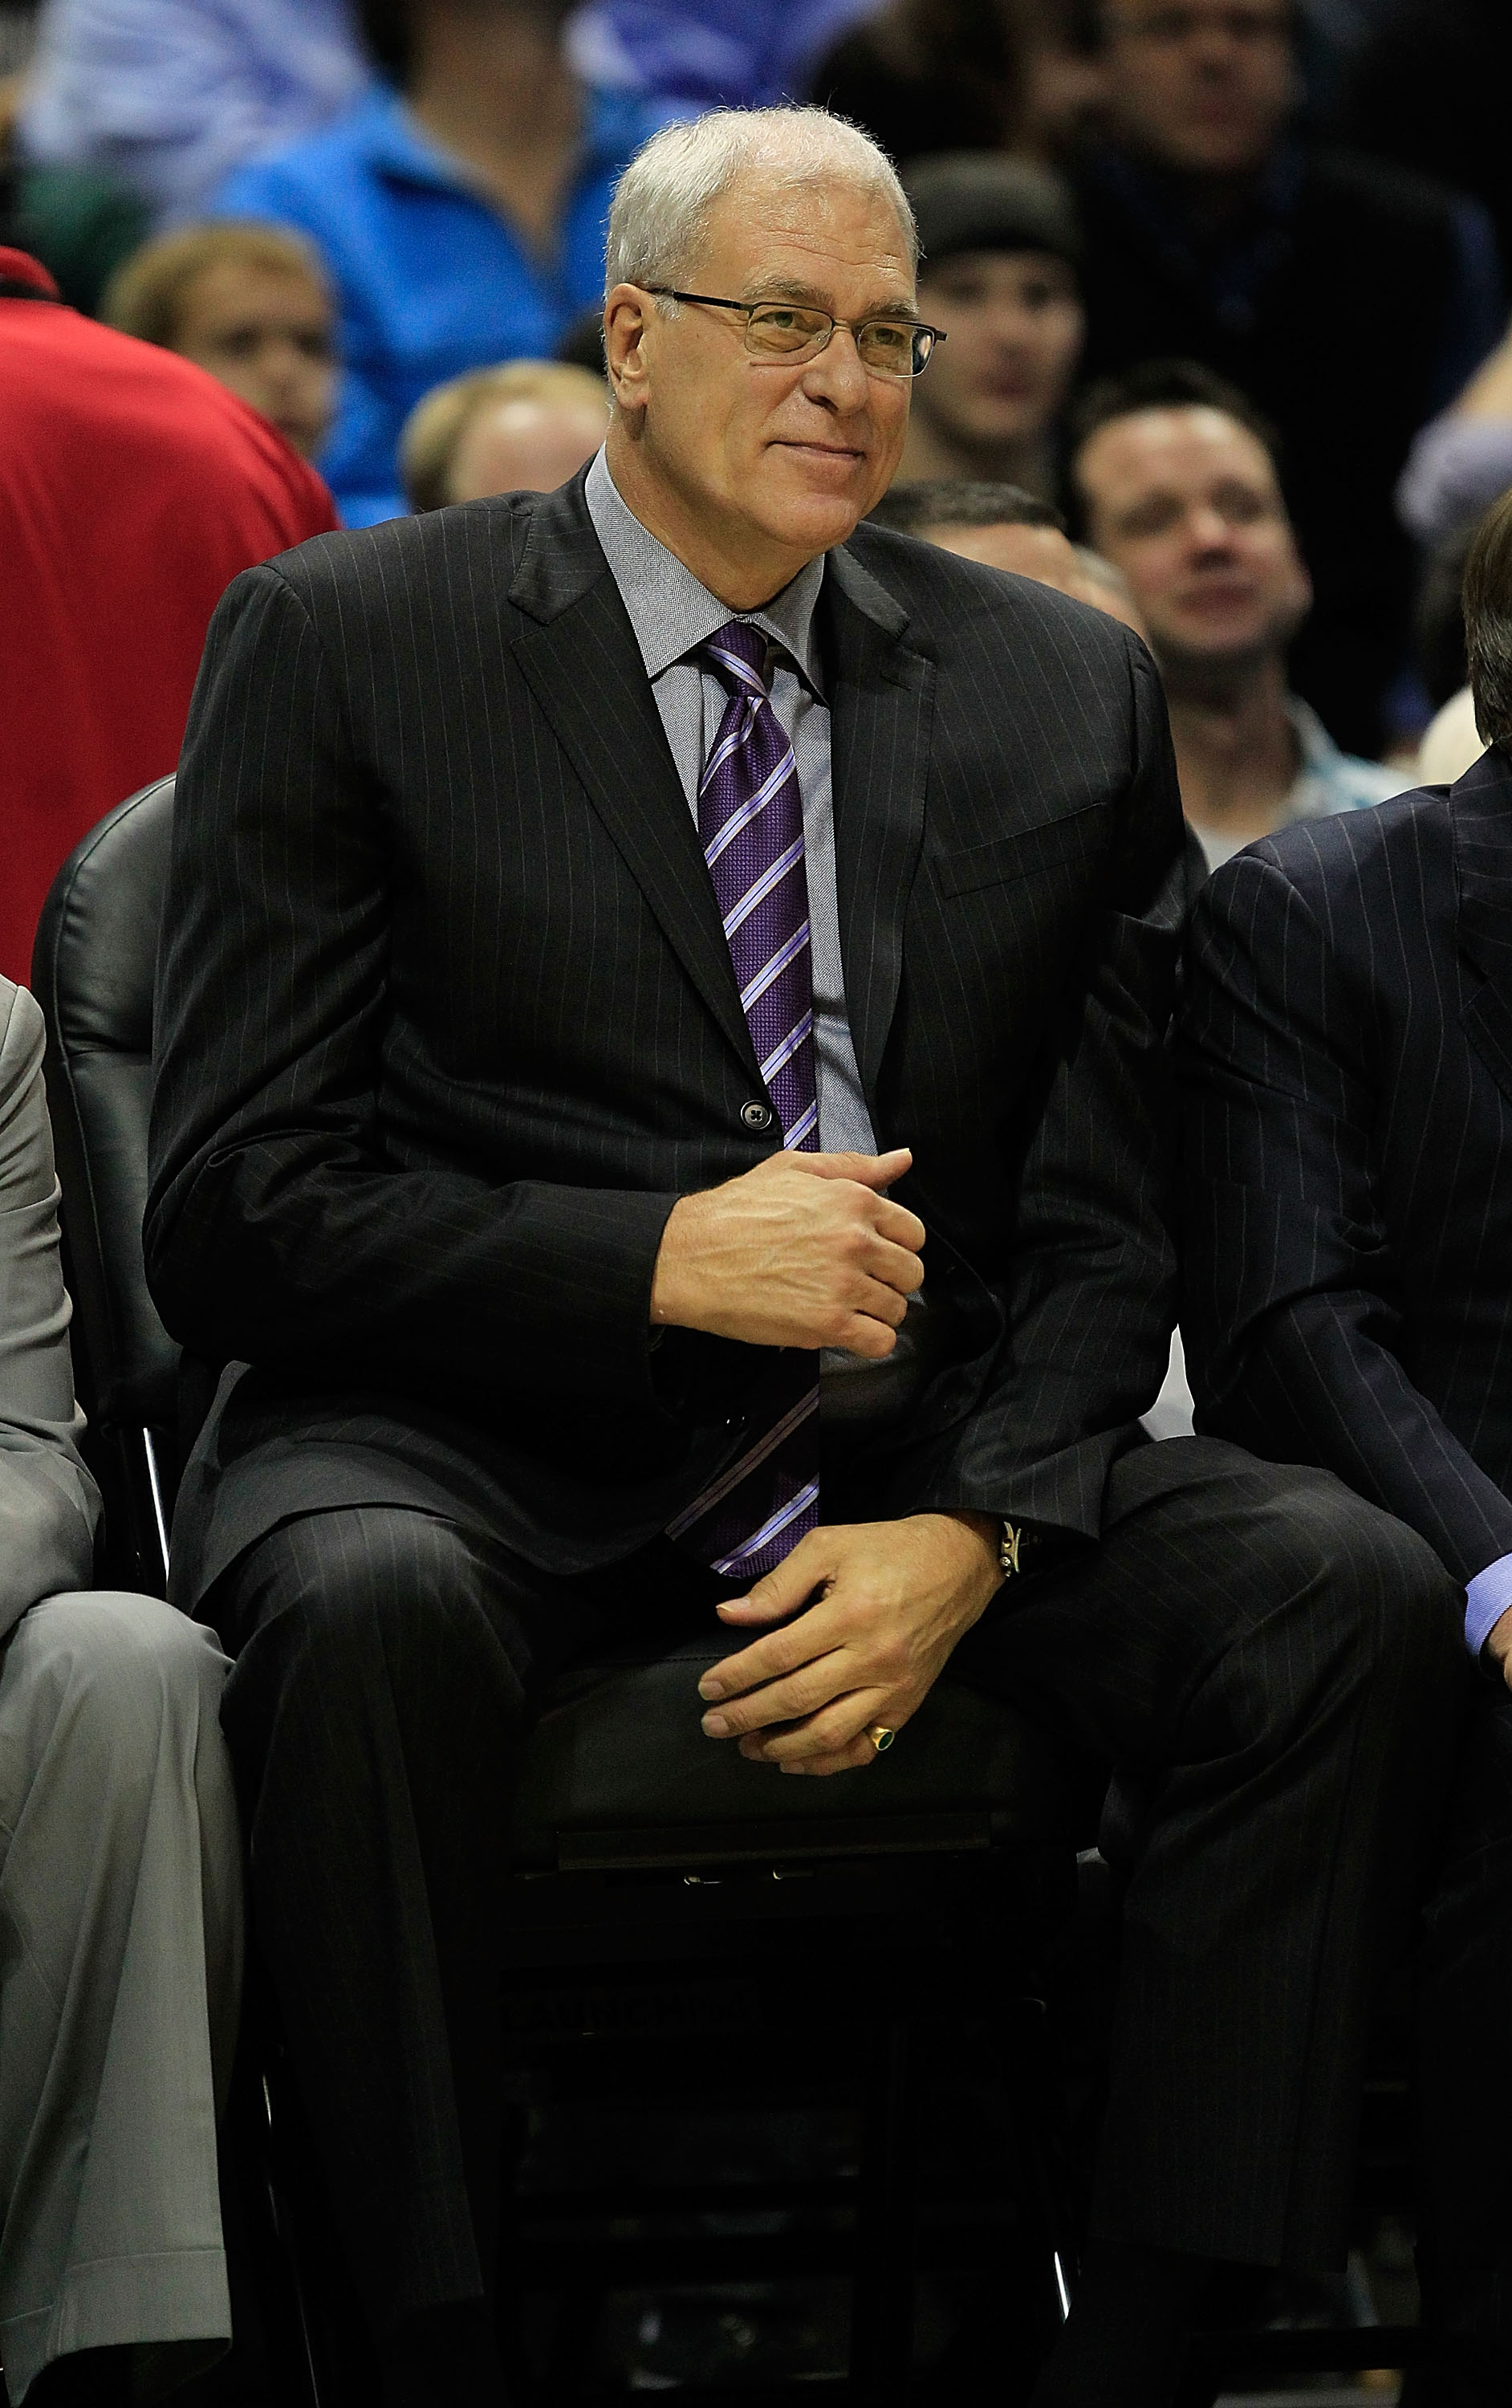 MILWAUKEE - NOVEMBER 16: Head coach Phil Jackson of the Los Angeles Lakers smiles as he watches his team take on the Milwaukee Bucks at the Bradley Center on November 16, 2010 in Milwaukee, Wisconsin. The Lakers defeated the Bucks 118-107. NOTE TO USER: U